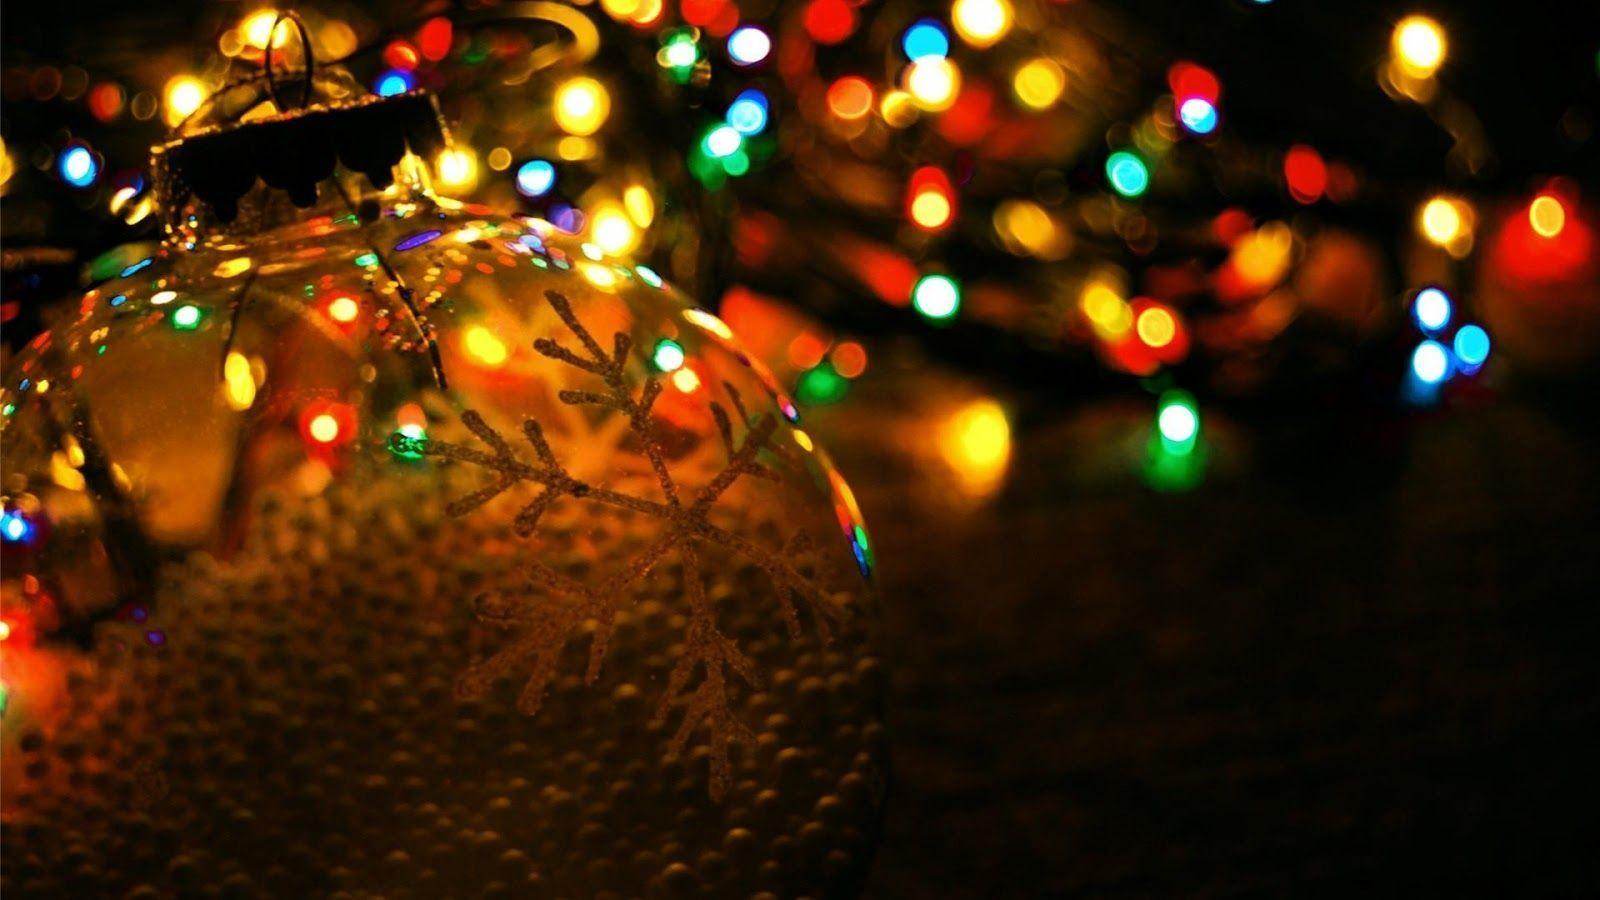 Christmas Lights HD Wallpaper Free Download | HD Free Wallpapers ...